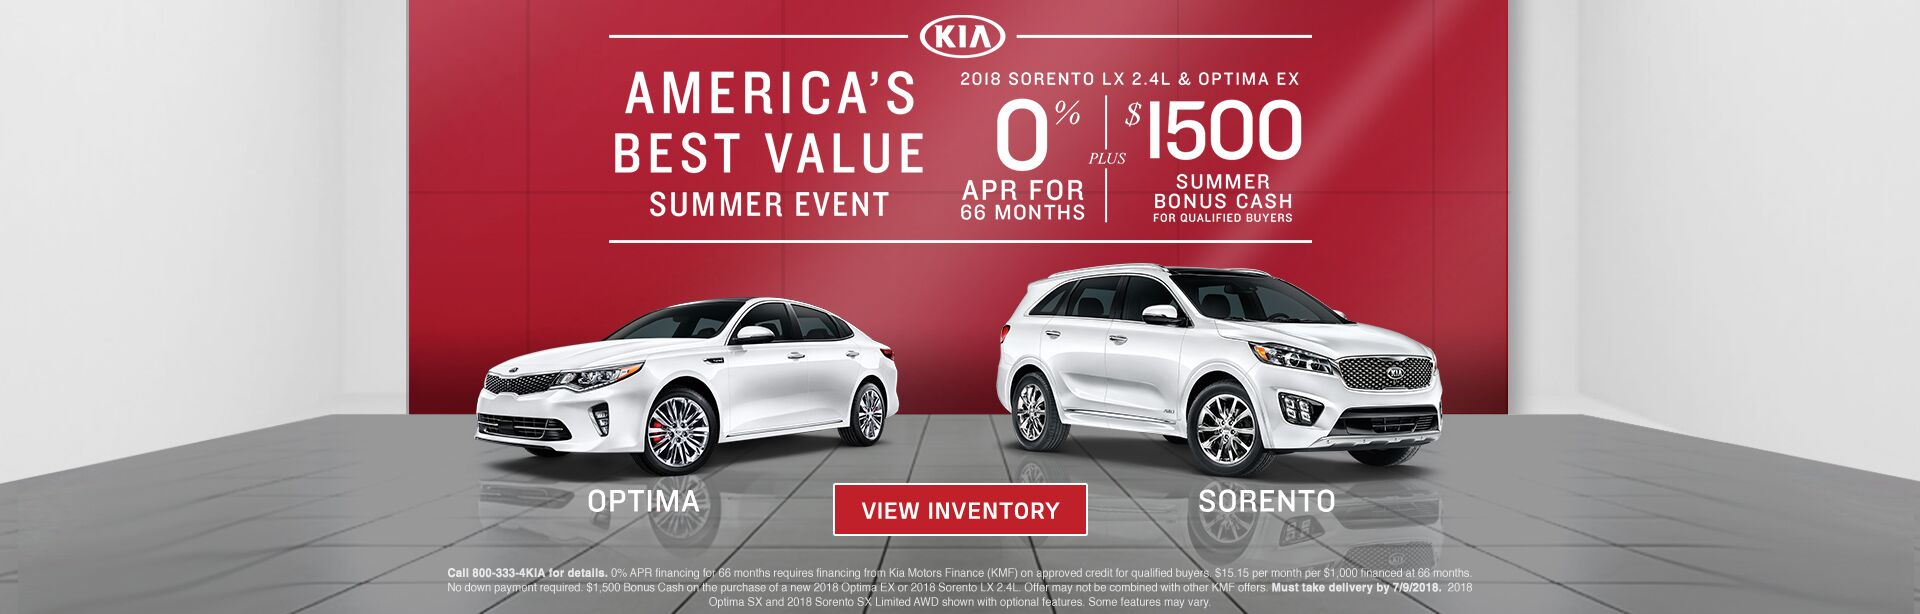 America's Best Value Summer Event at Route 6 Auto Mall KIA